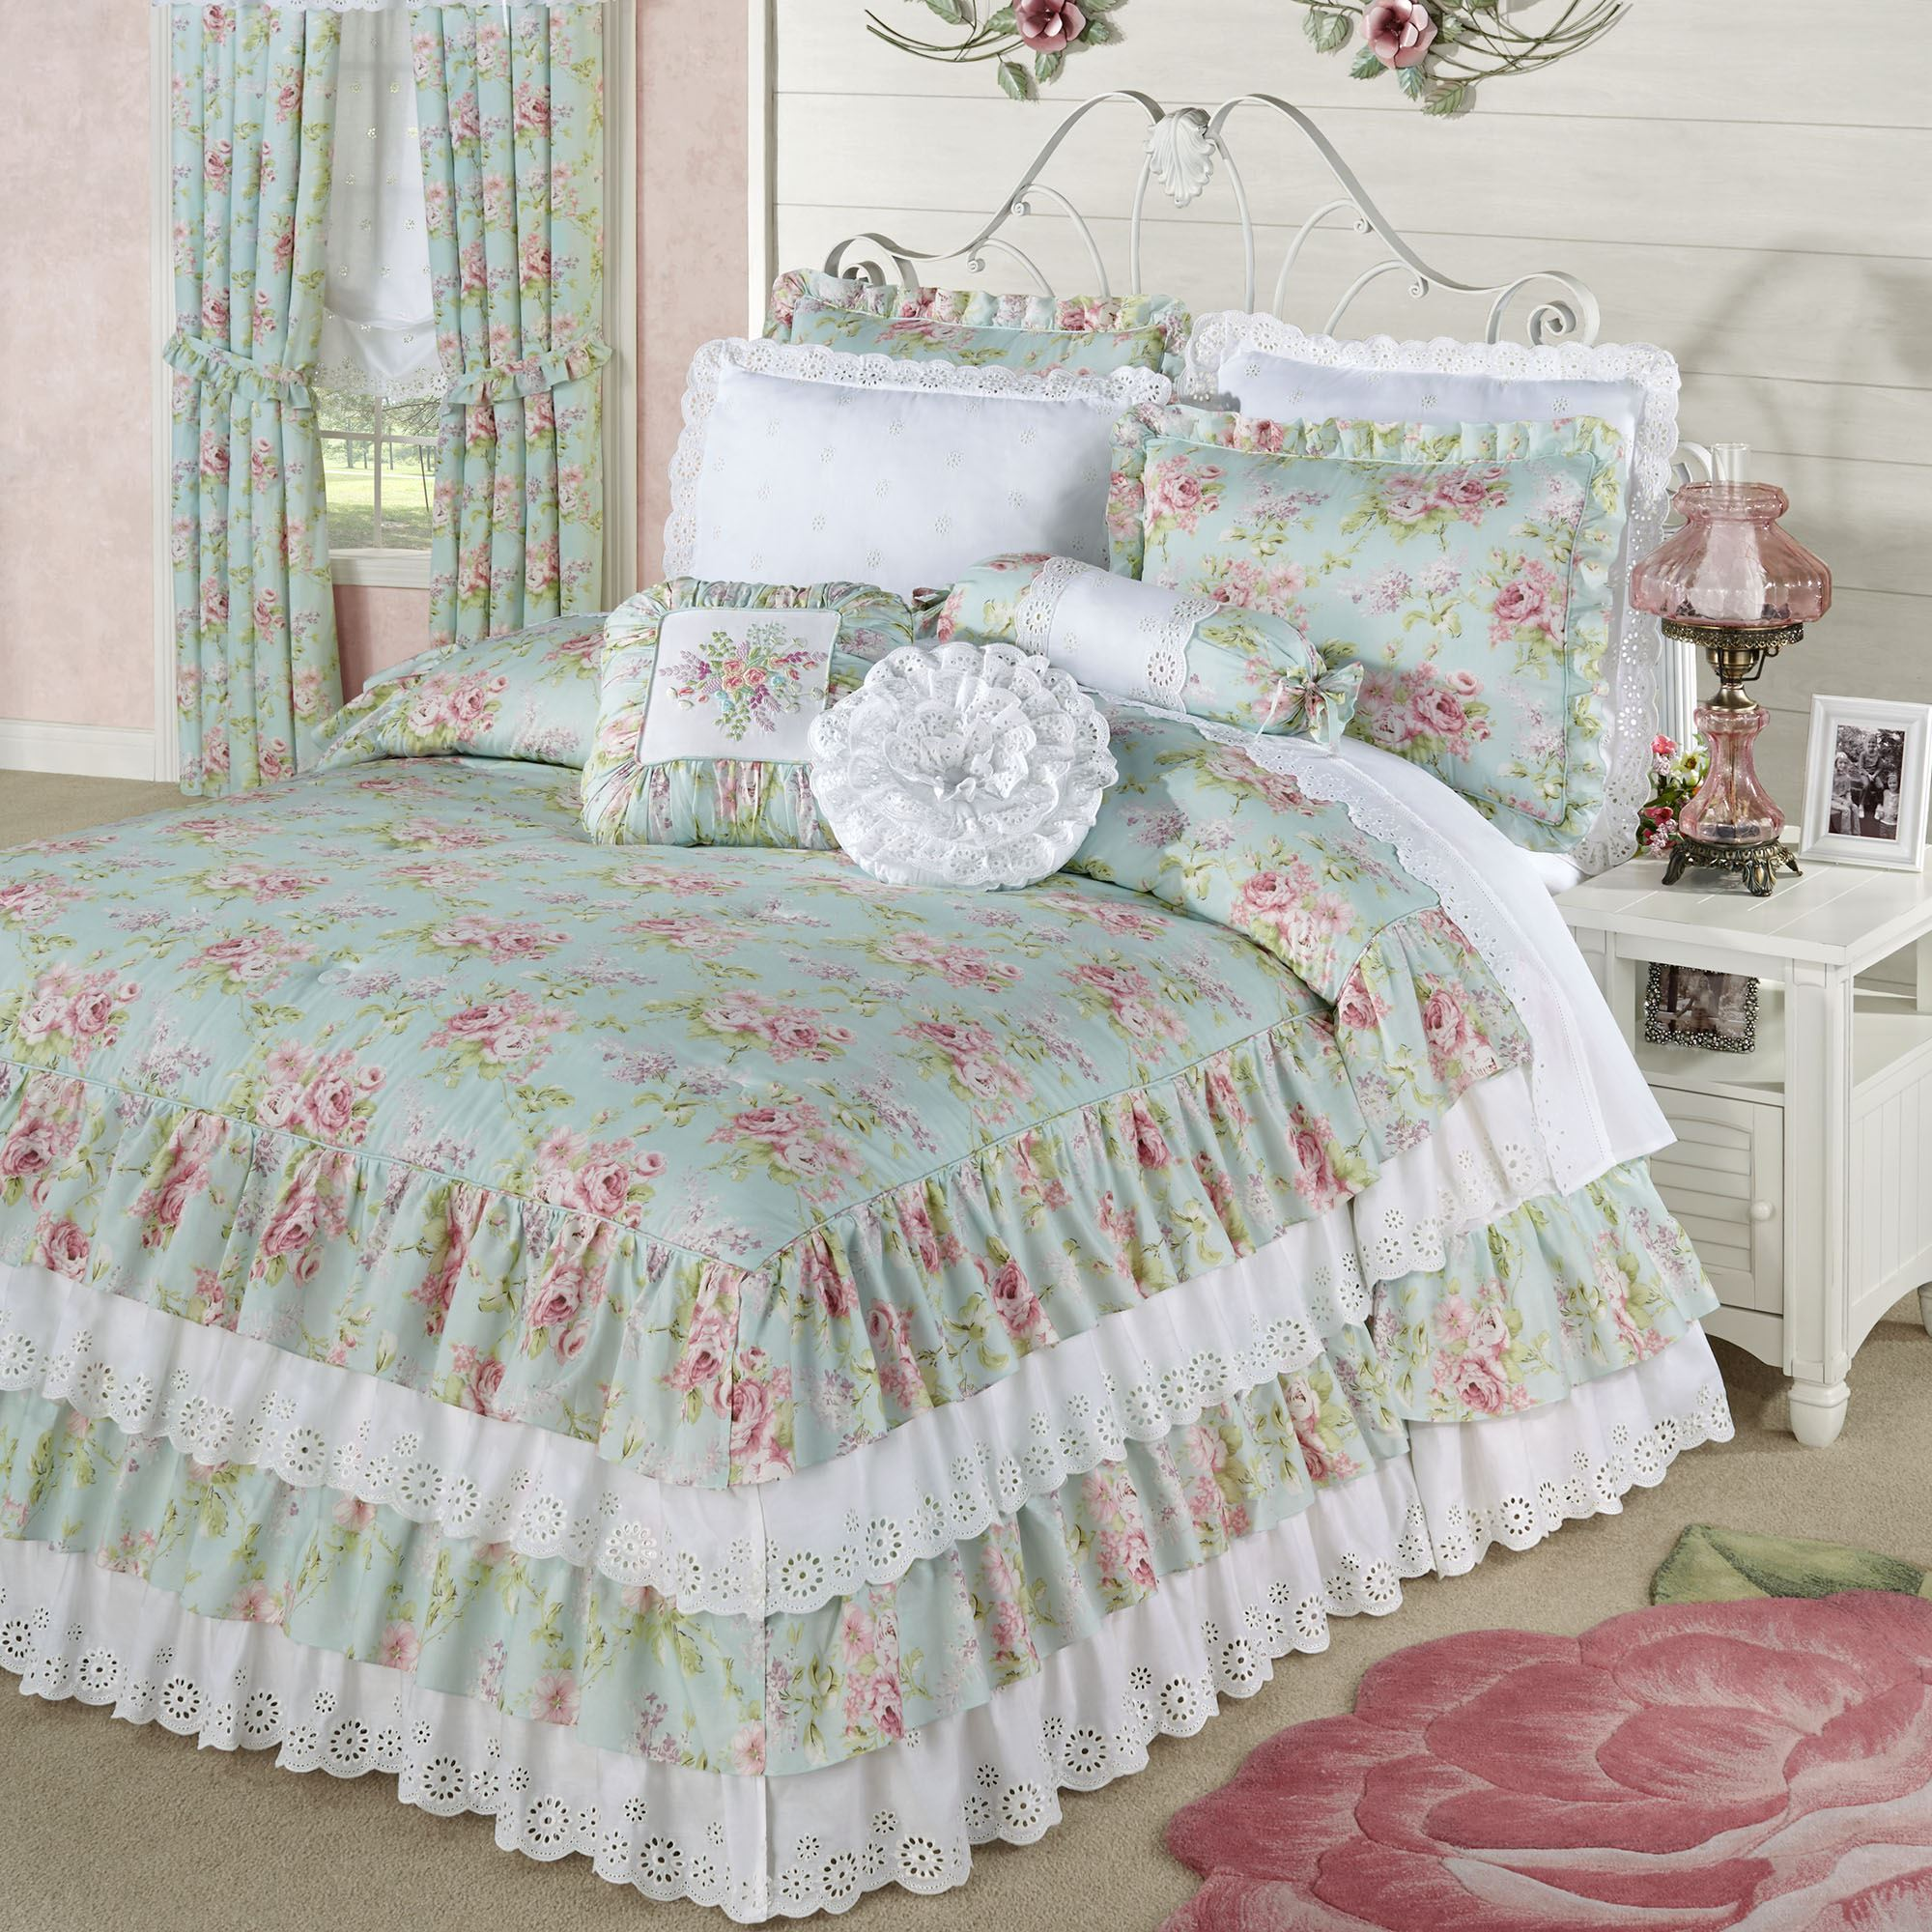 Cottage Rose Aqua Mist Floral Grande Ruffled Bedspread Bedding